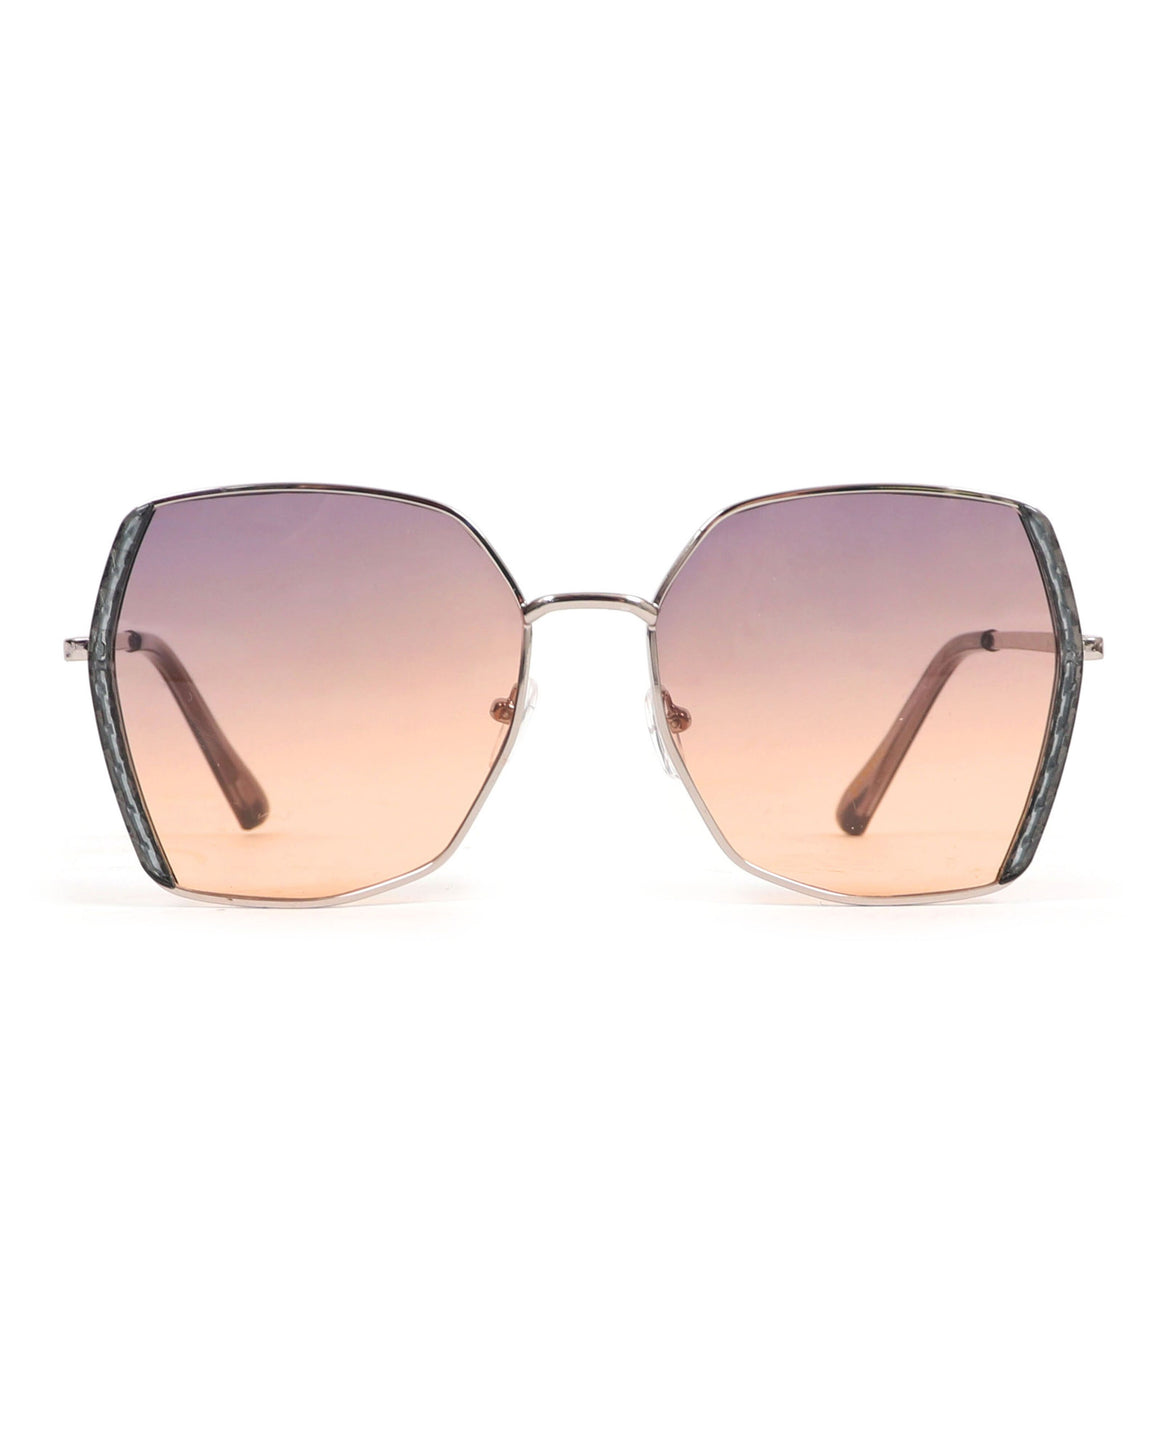 Powder Peyton Sunglasses